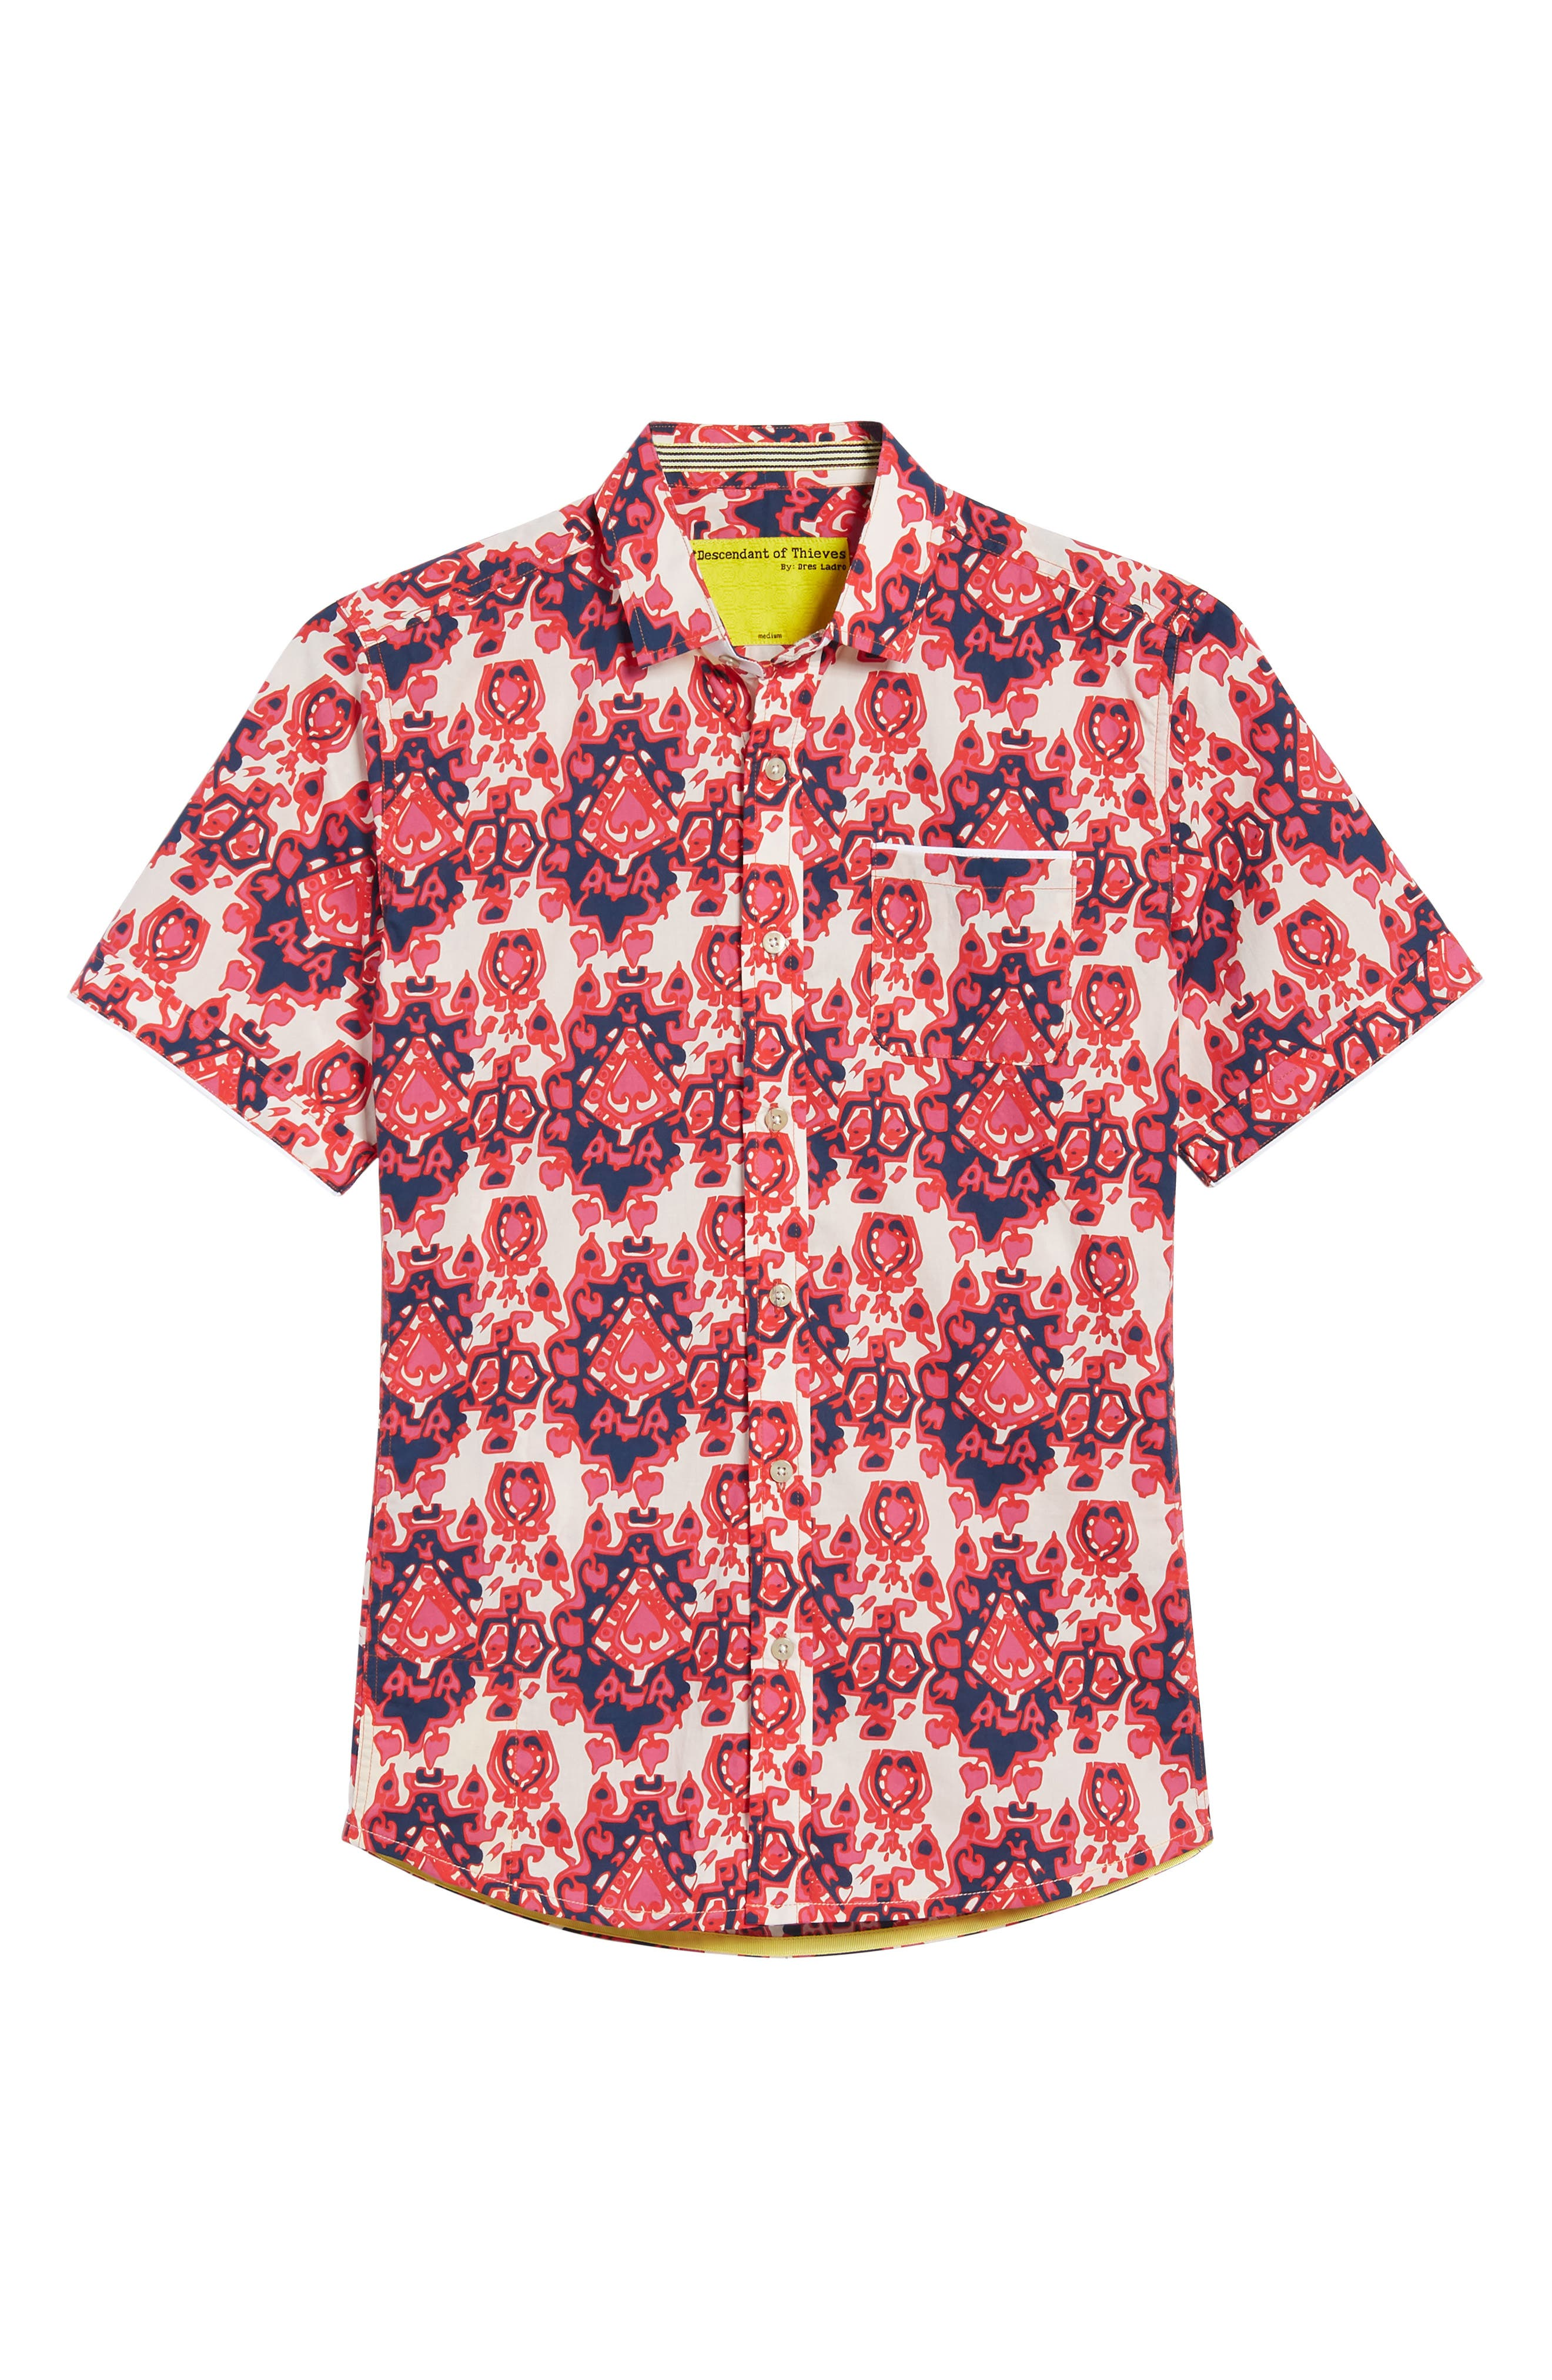 Abstract Culture Woven Shirt,                             Alternate thumbnail 6, color,                             Punch Red